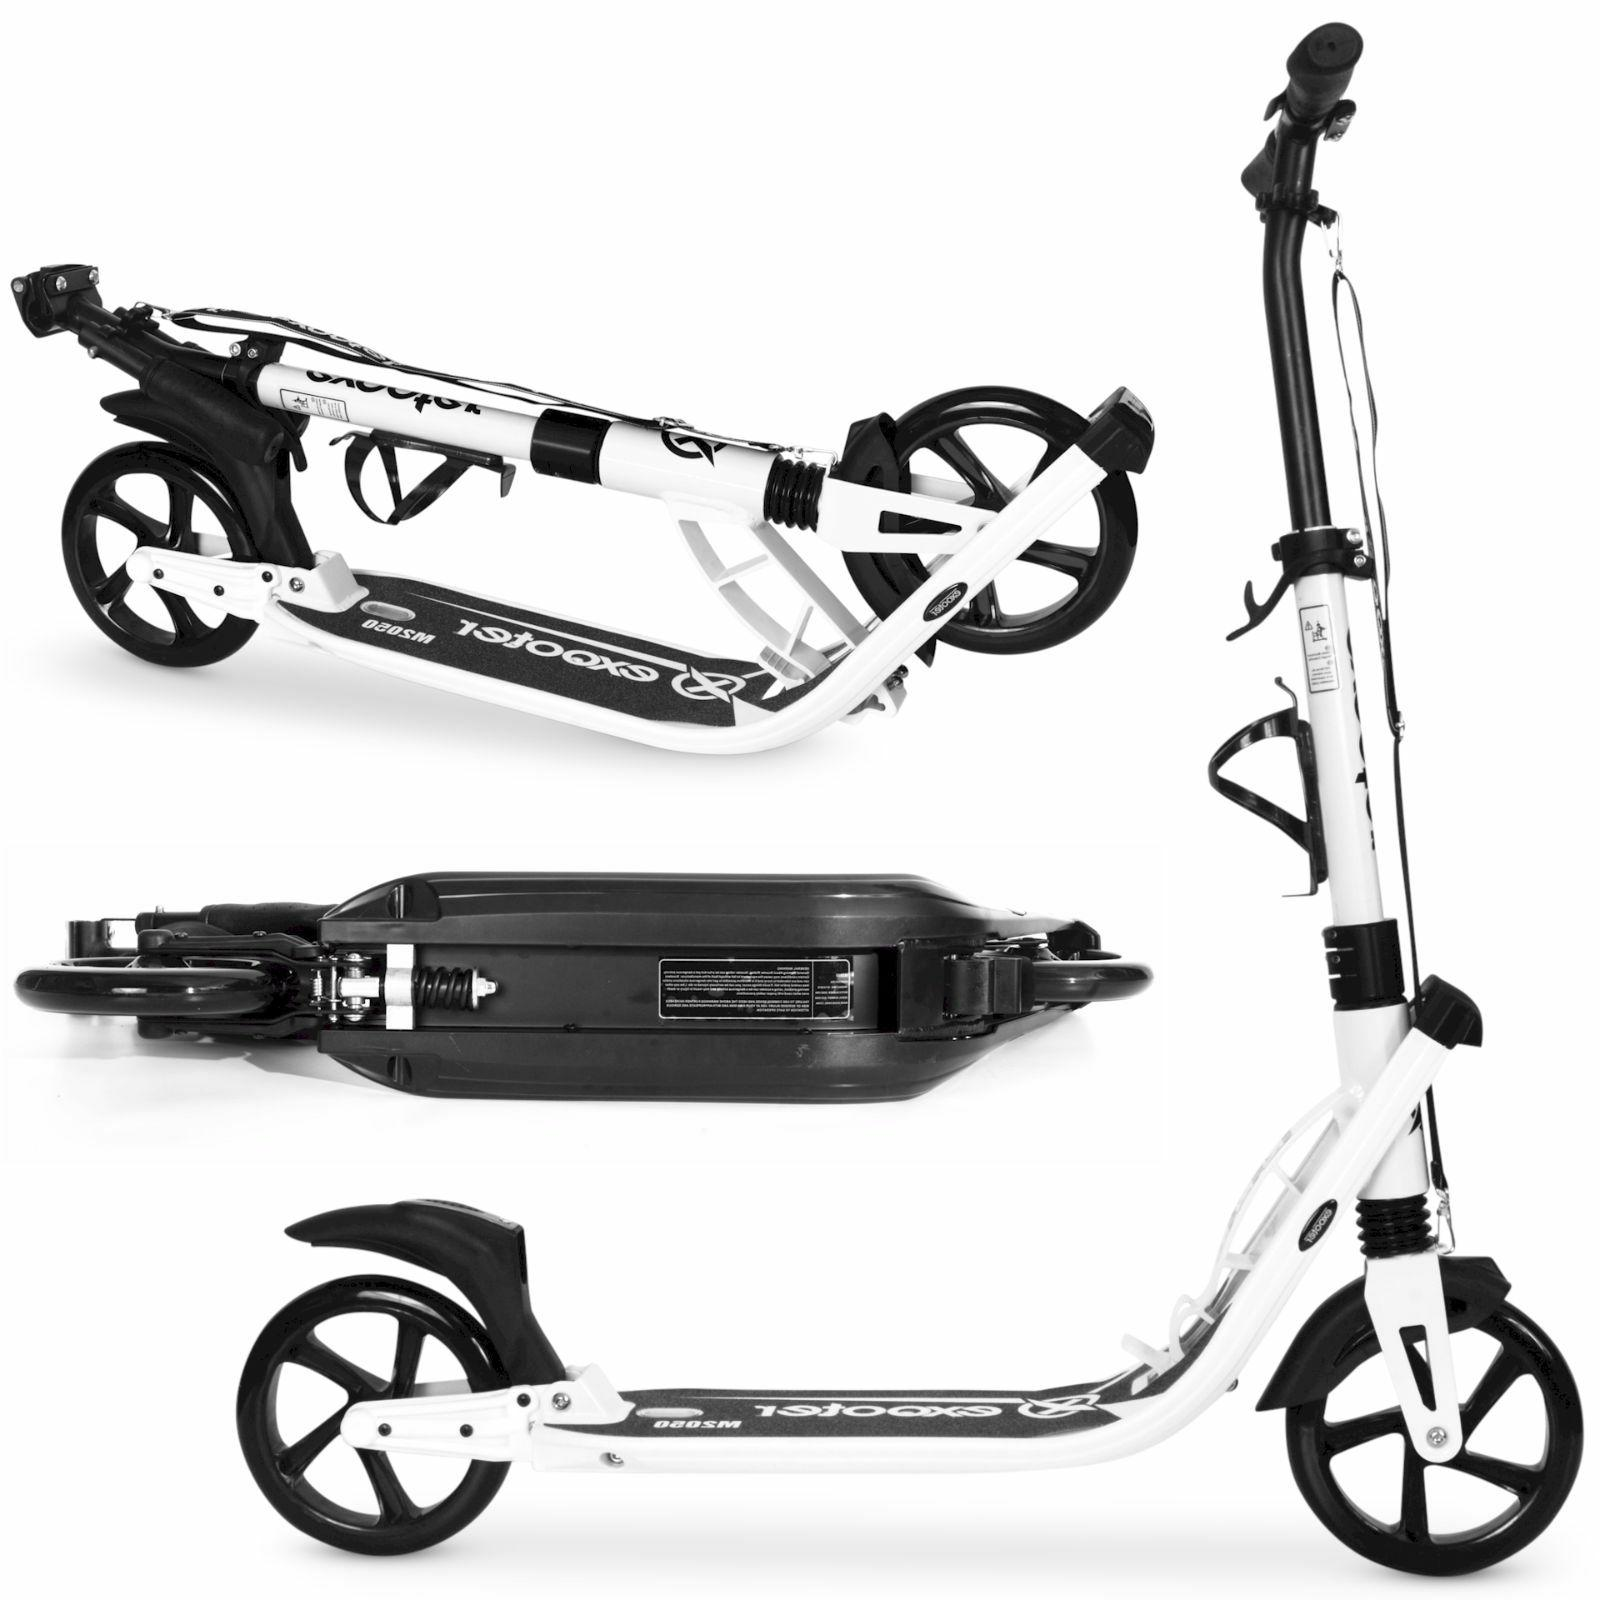 *OPEN BOX* EXOOTER 9XL With Dual Shocks White.